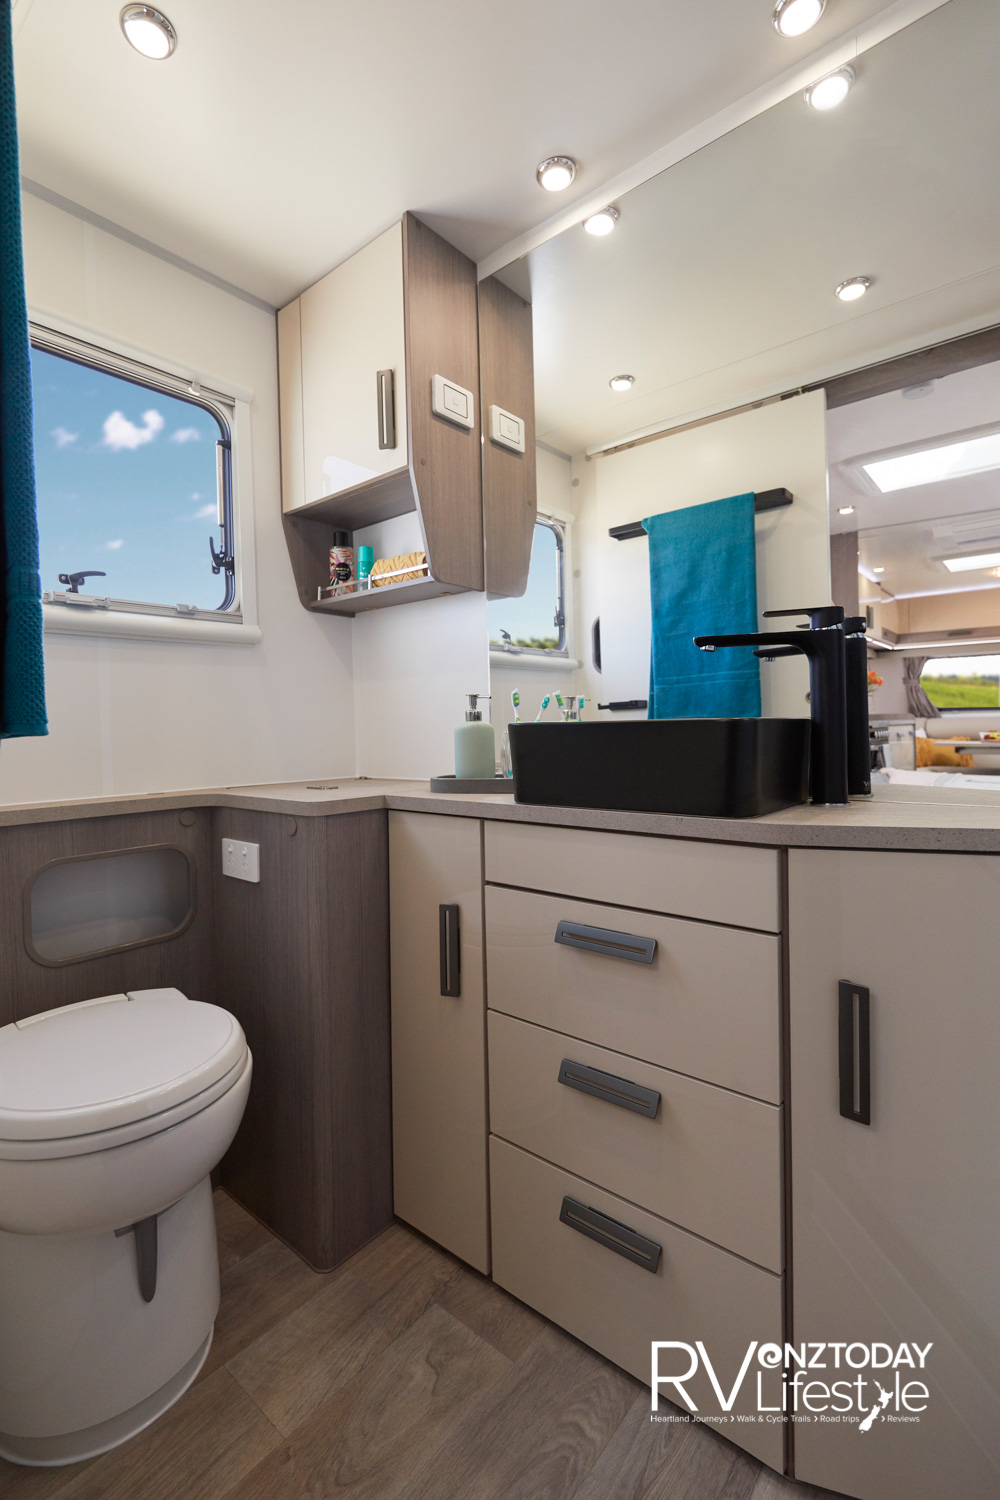 The full-width bathroom has plenty of space. 112v electric flush pedestal cassette toilet, drawers and cupboards under the long bench, in the left corner a laundry station - with washing machine in the cupboard. In the right corner out of sight a shower